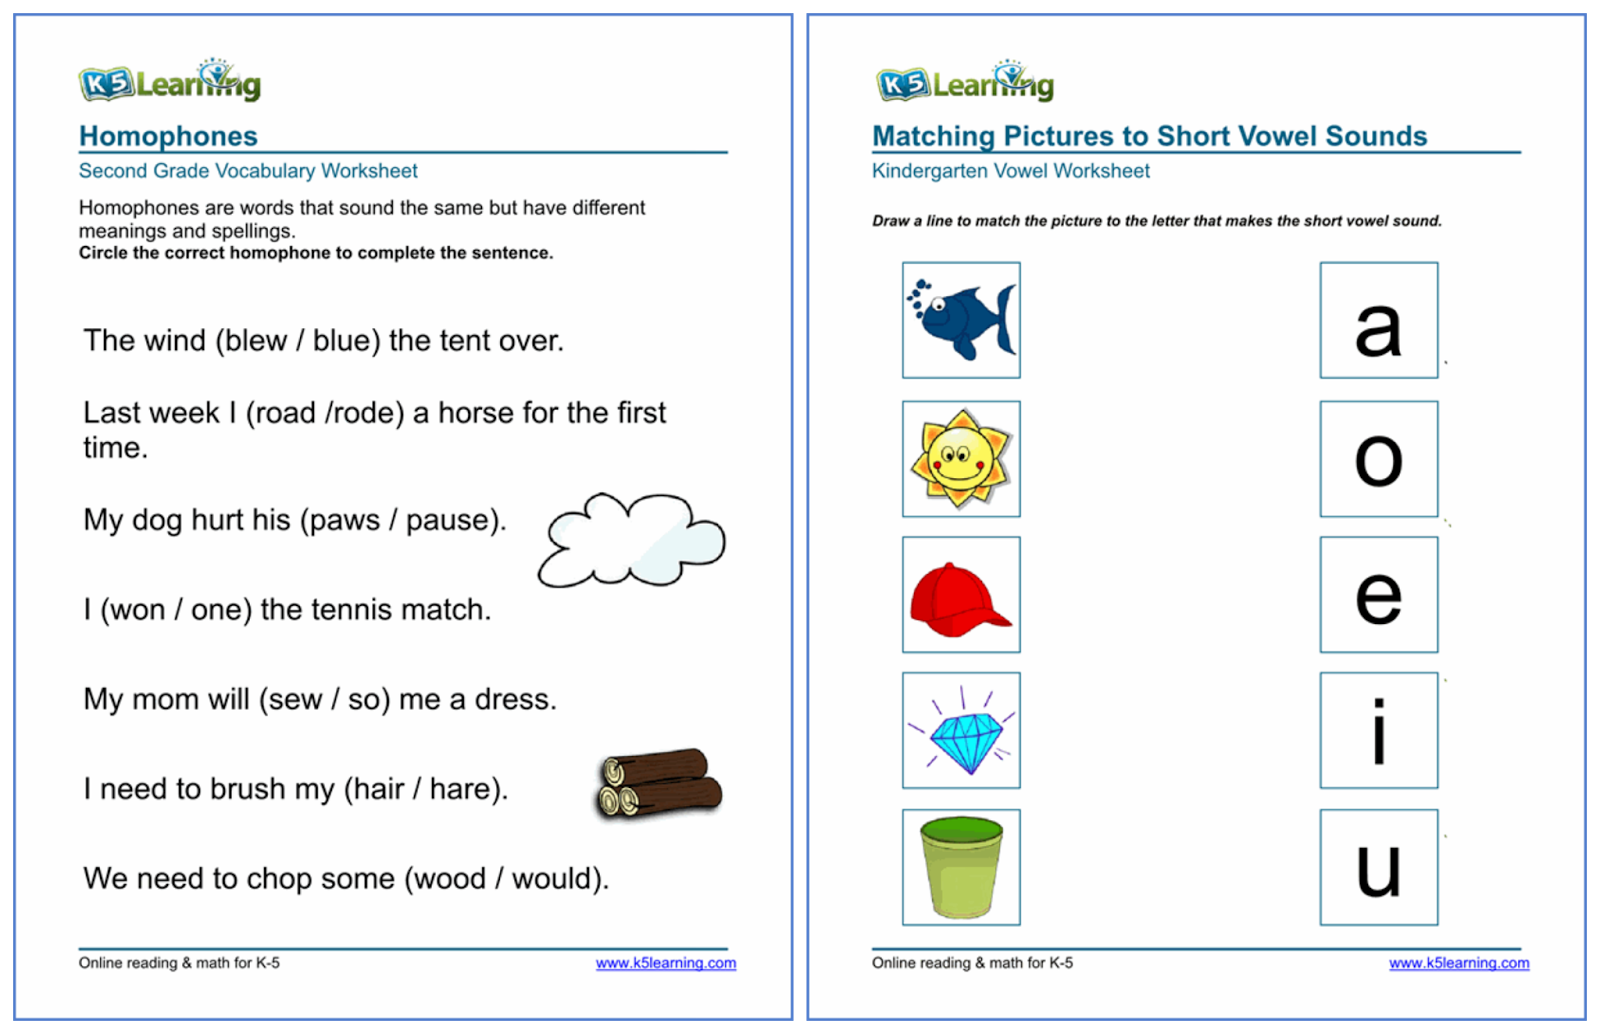 Online Math and Reading Enrichment Program for Kids: K5 ...